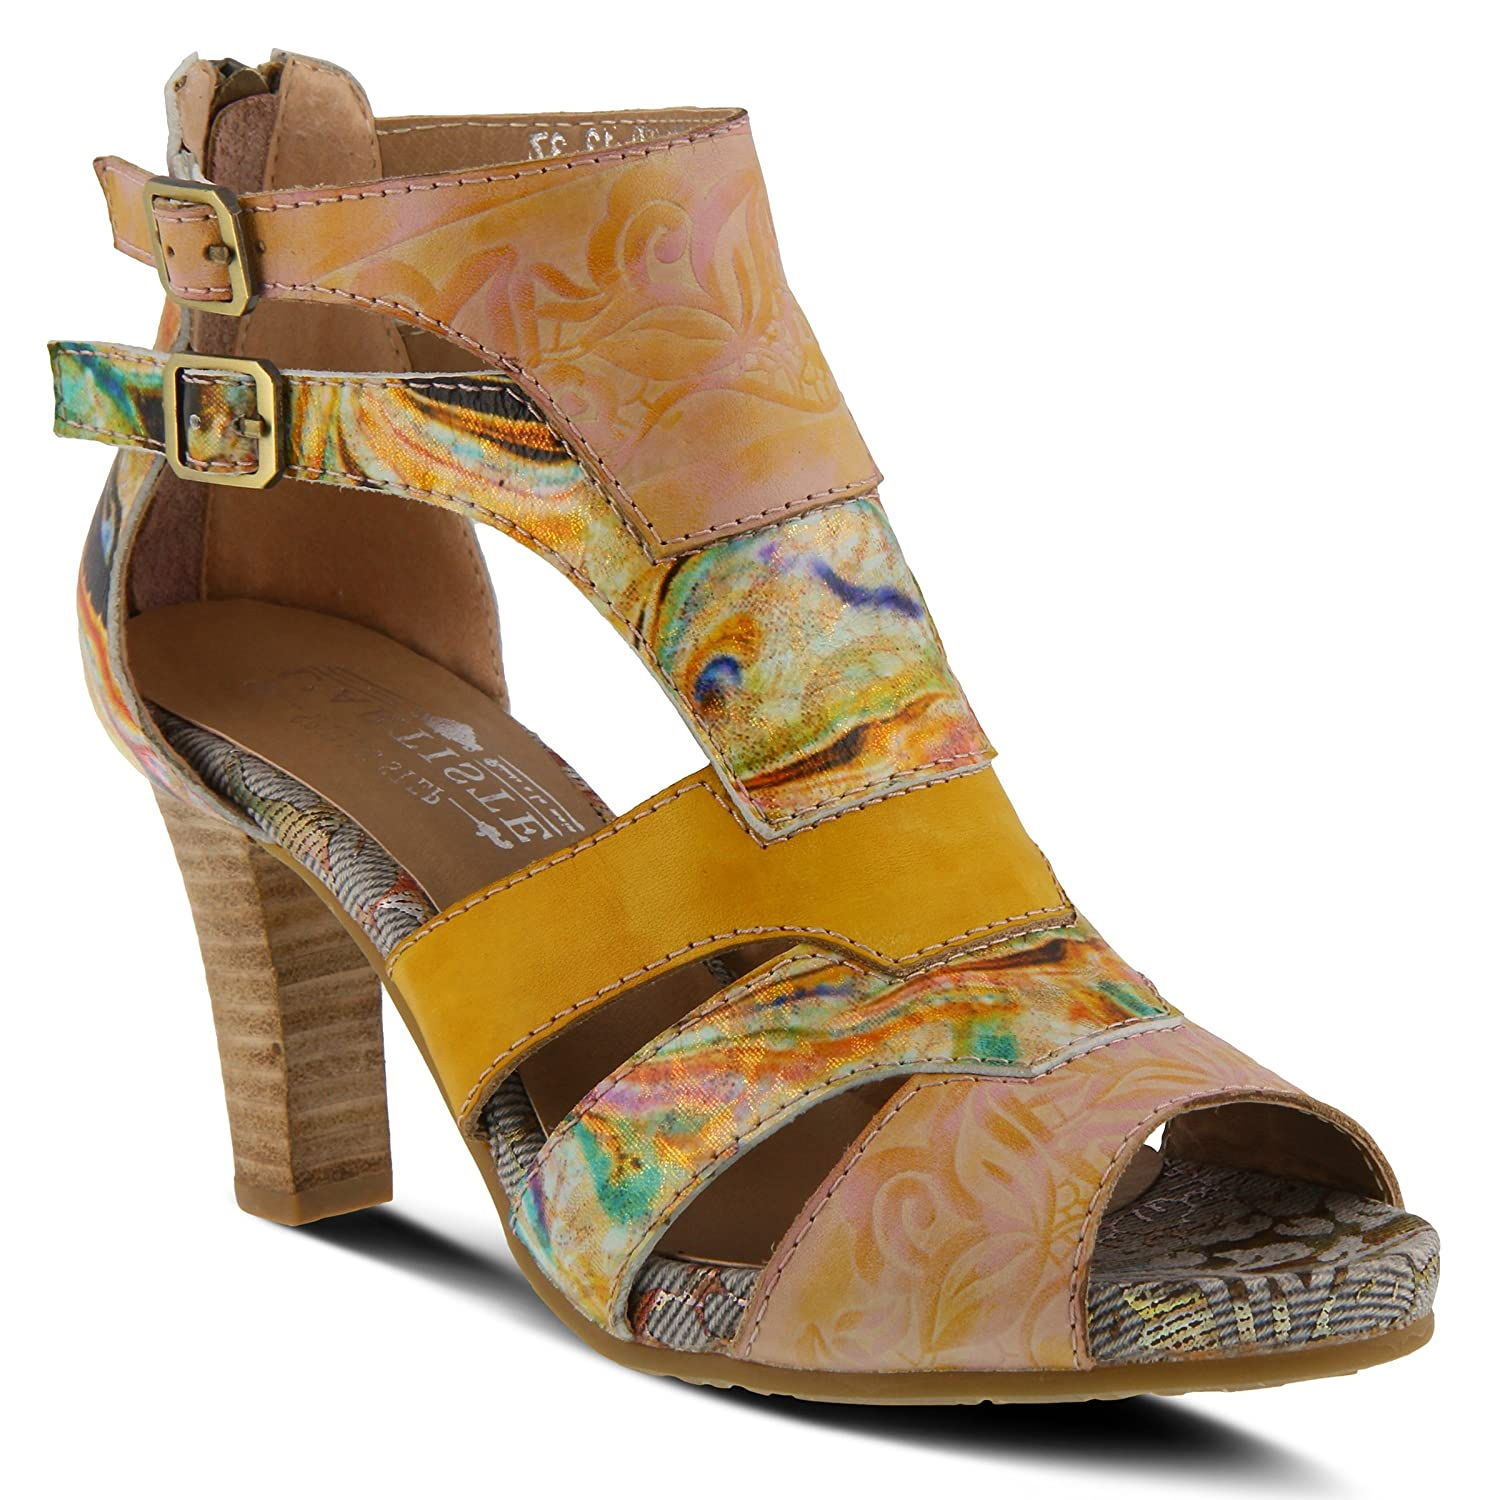 L'ARTISTE Shoes Women's L`Artiste Brooke Sandal | Color Yellow Multi | Women's Leather Peep Toe Laser-Cut Bootie. B07B4P99ZN 35 M EU